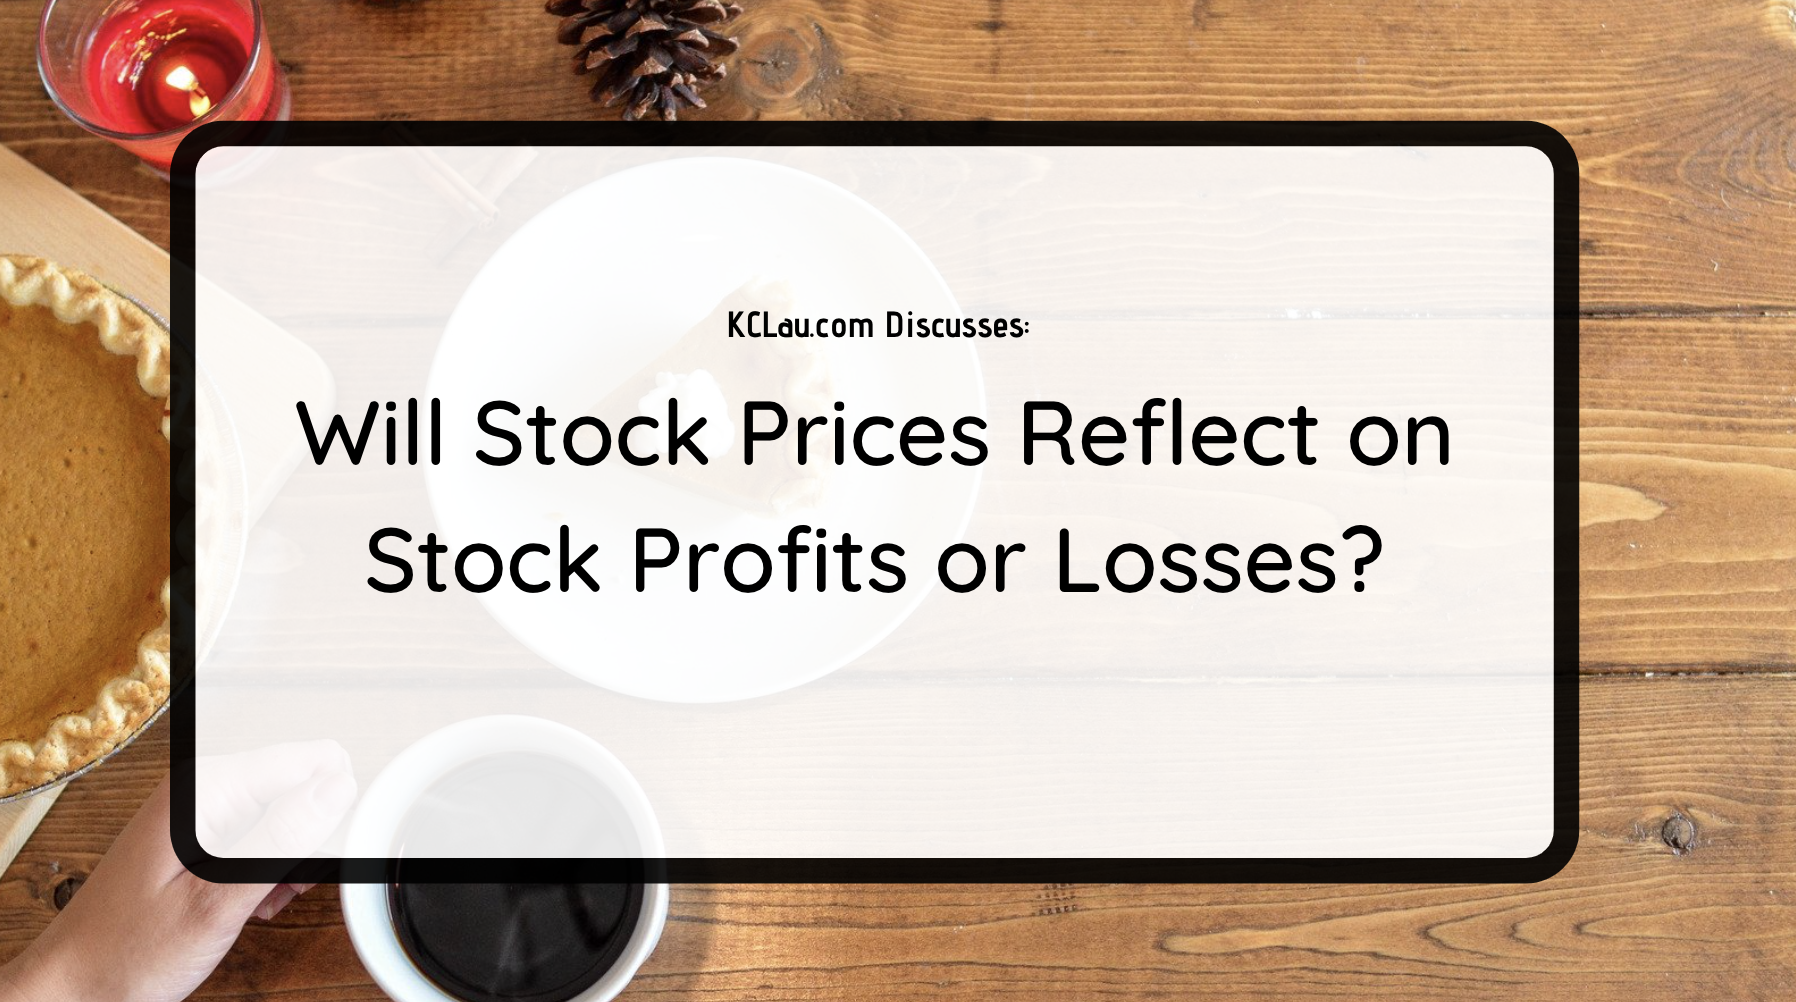 Will Stock Prices Reflect on Stock Profits or Losses?